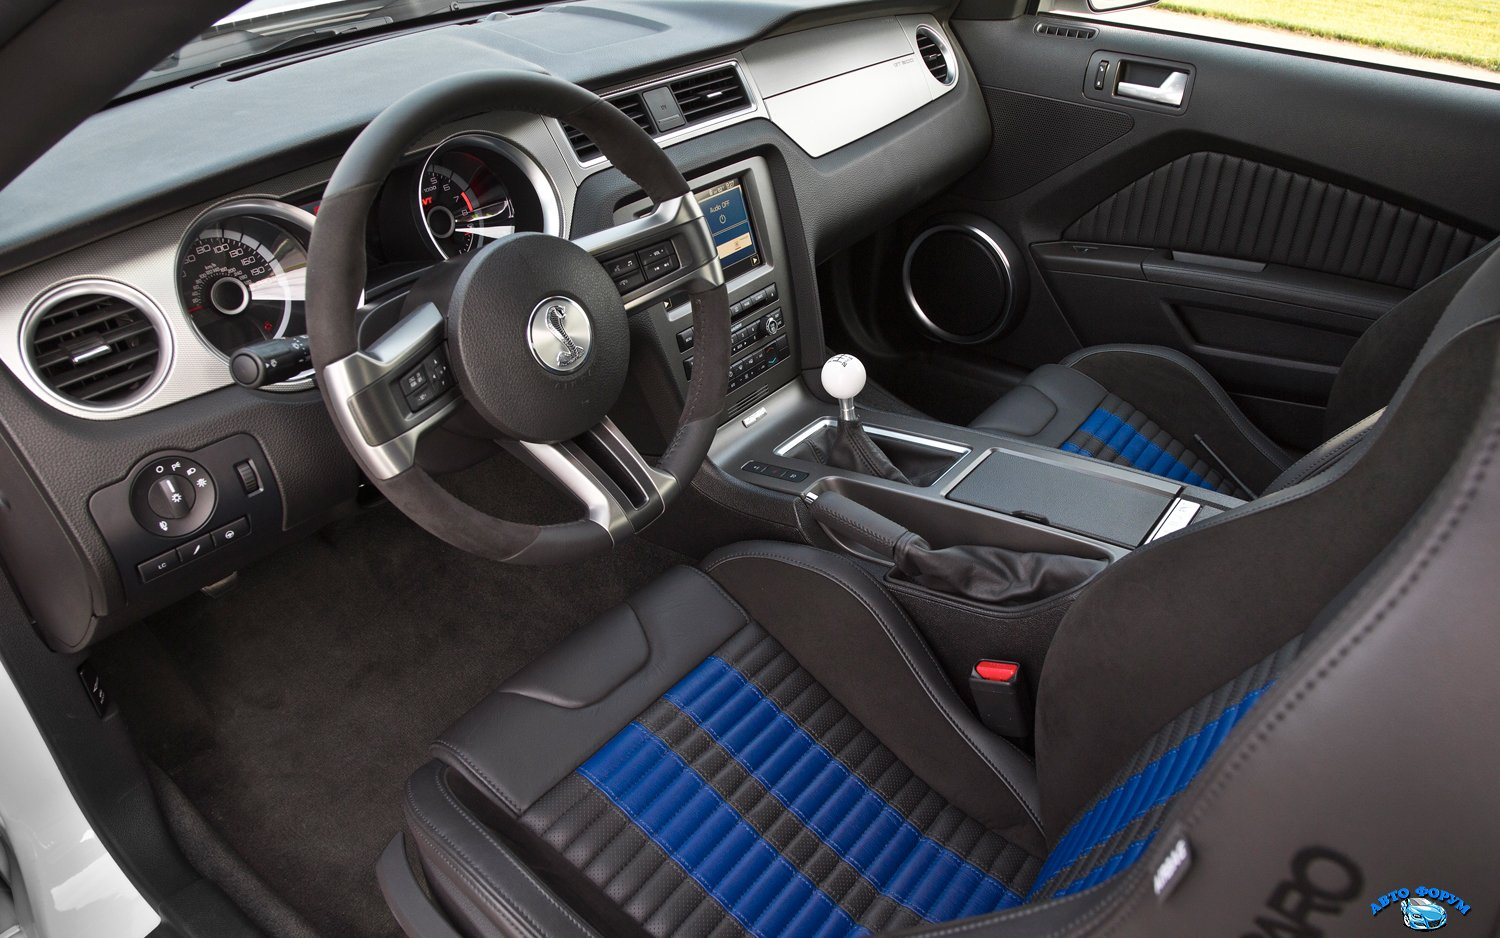 2013-ford-shelby-gt500-interior.jpg